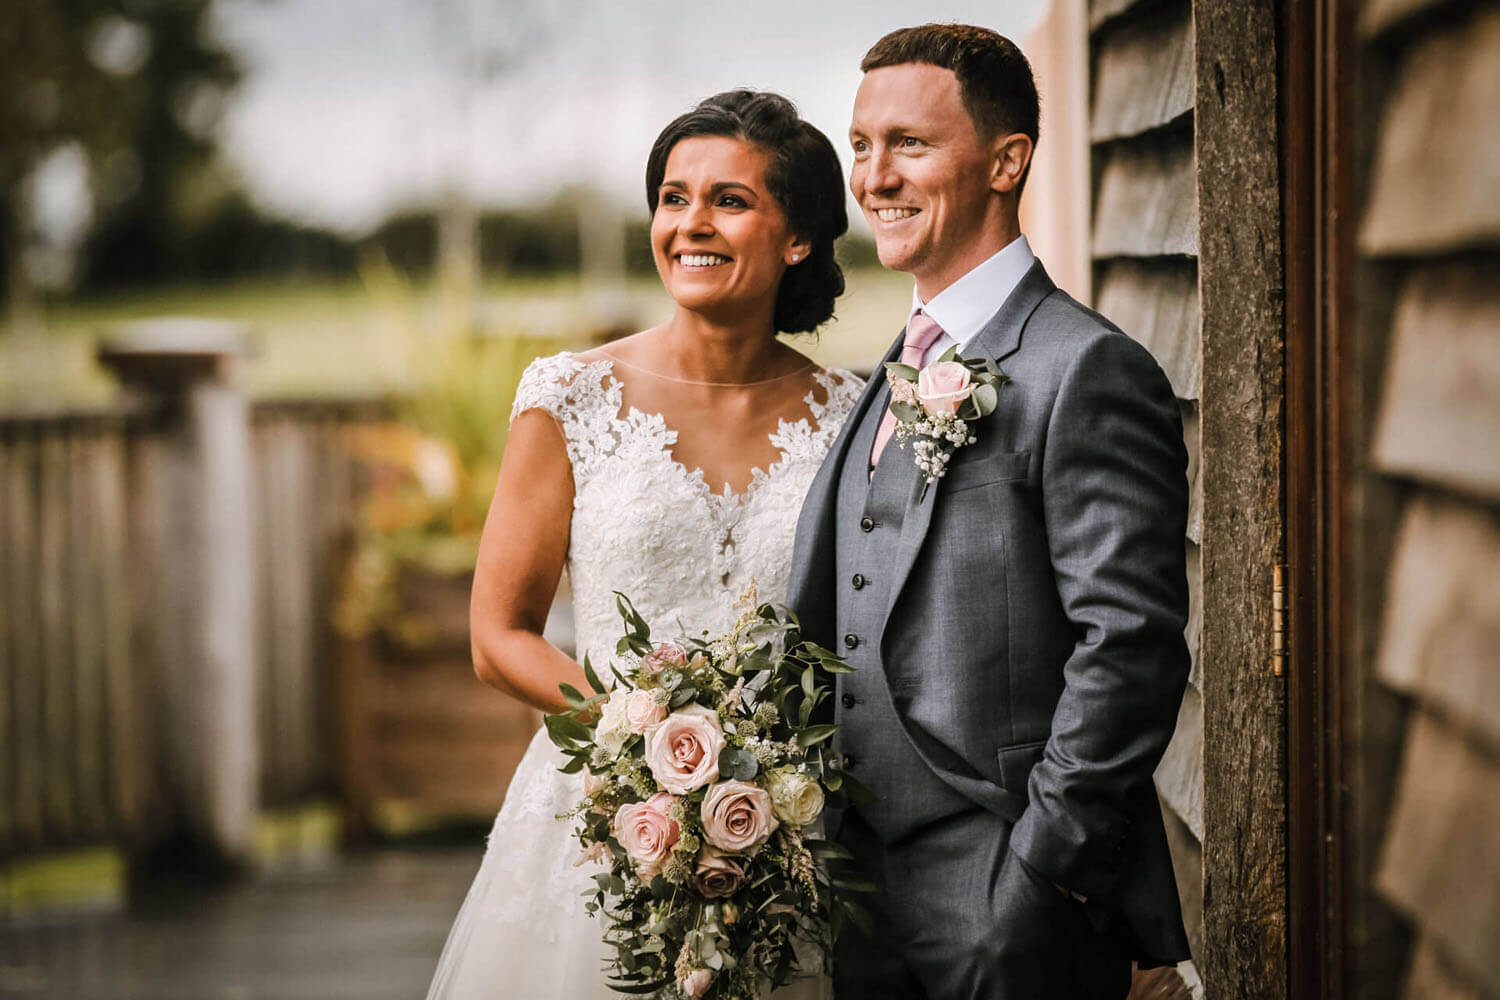 photo of Smiling happy bride and groom by West Lancs wedding photographer Wes Simpson